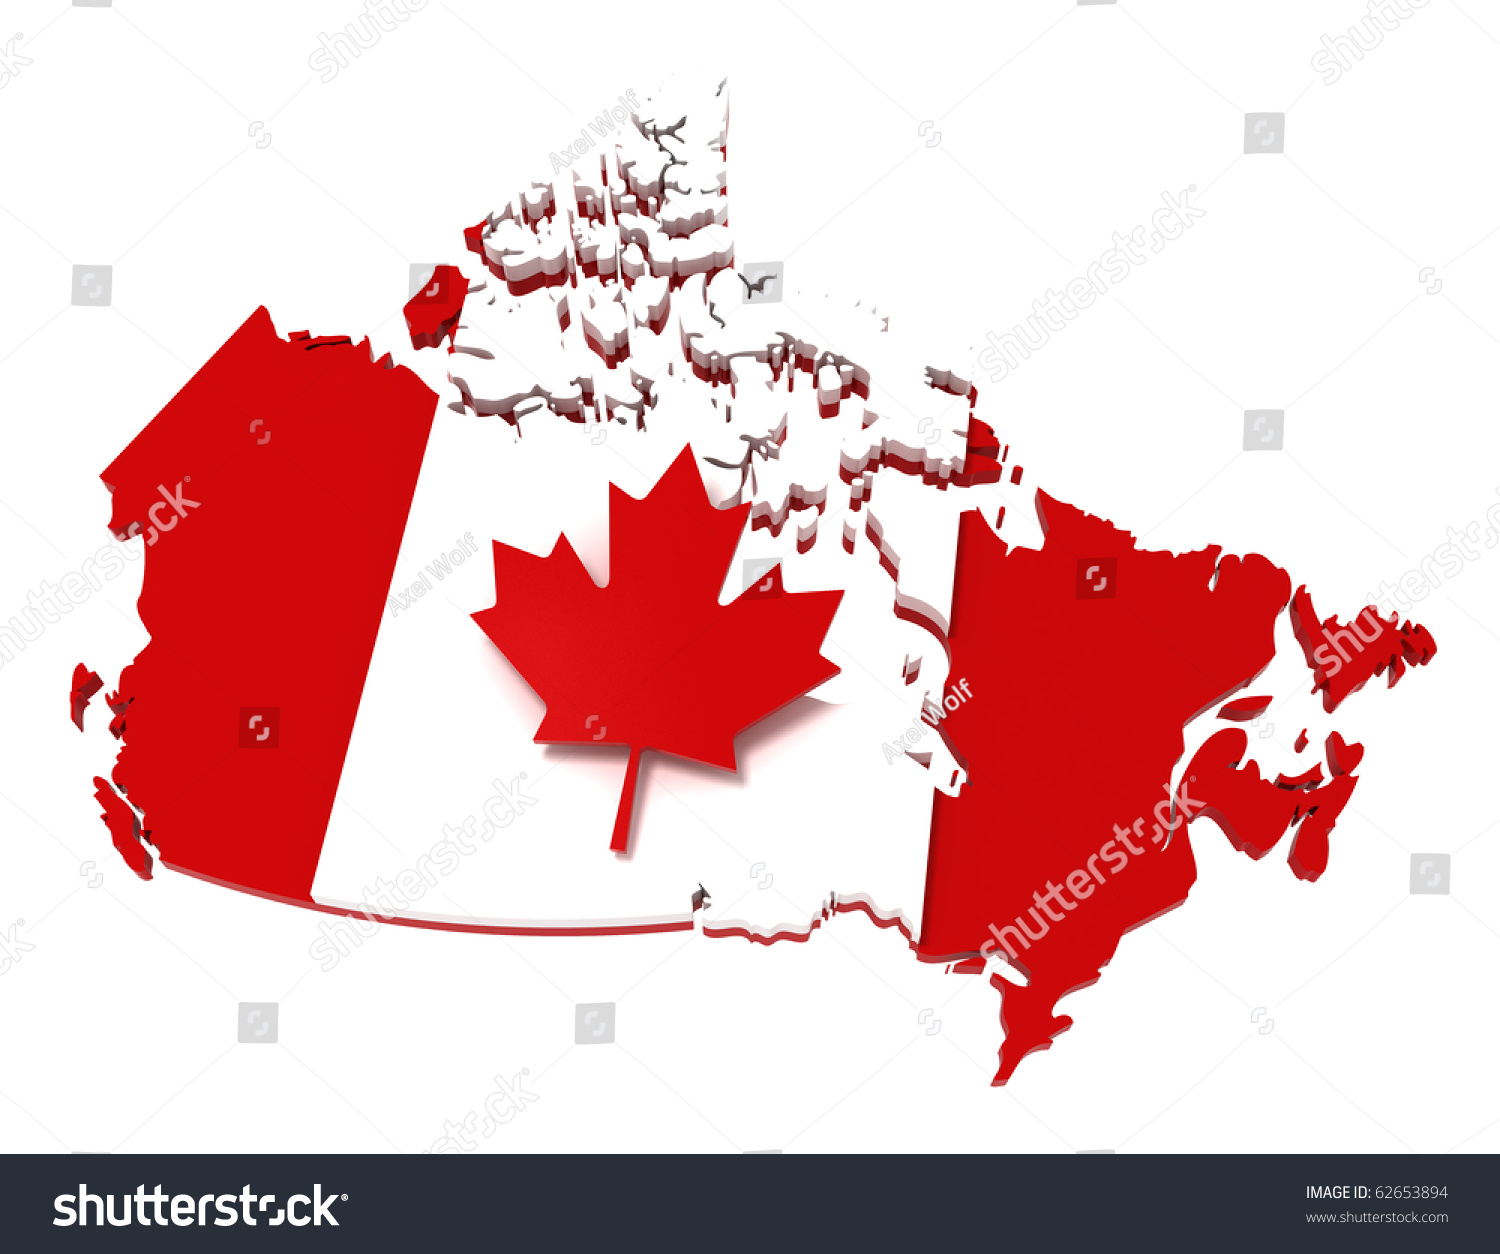 Canada Map Flag.Royalty Free Stock Illustration Of Canada Map Flag Clipping Path 3 D